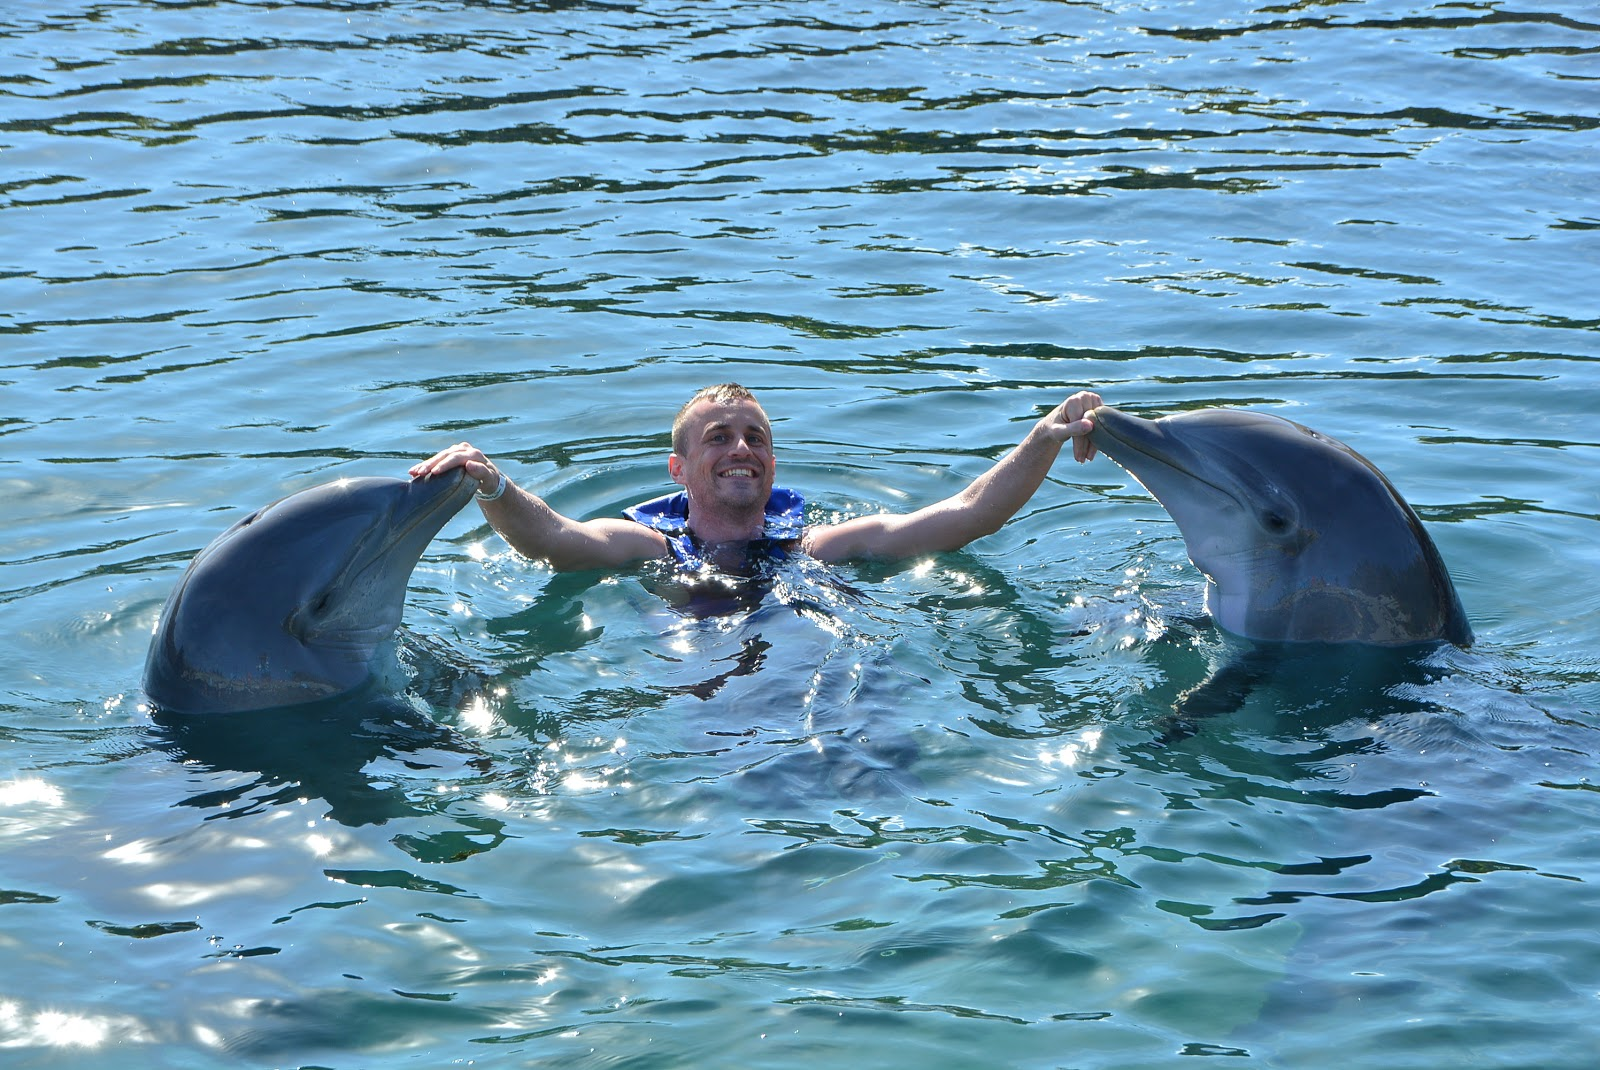 swimming with dolphins, dolphin experience, mexico, mexico vacation, delphinus riviera mava, xcaret, dolphin kisses, dolphin swim, ocean, ocean swimming,